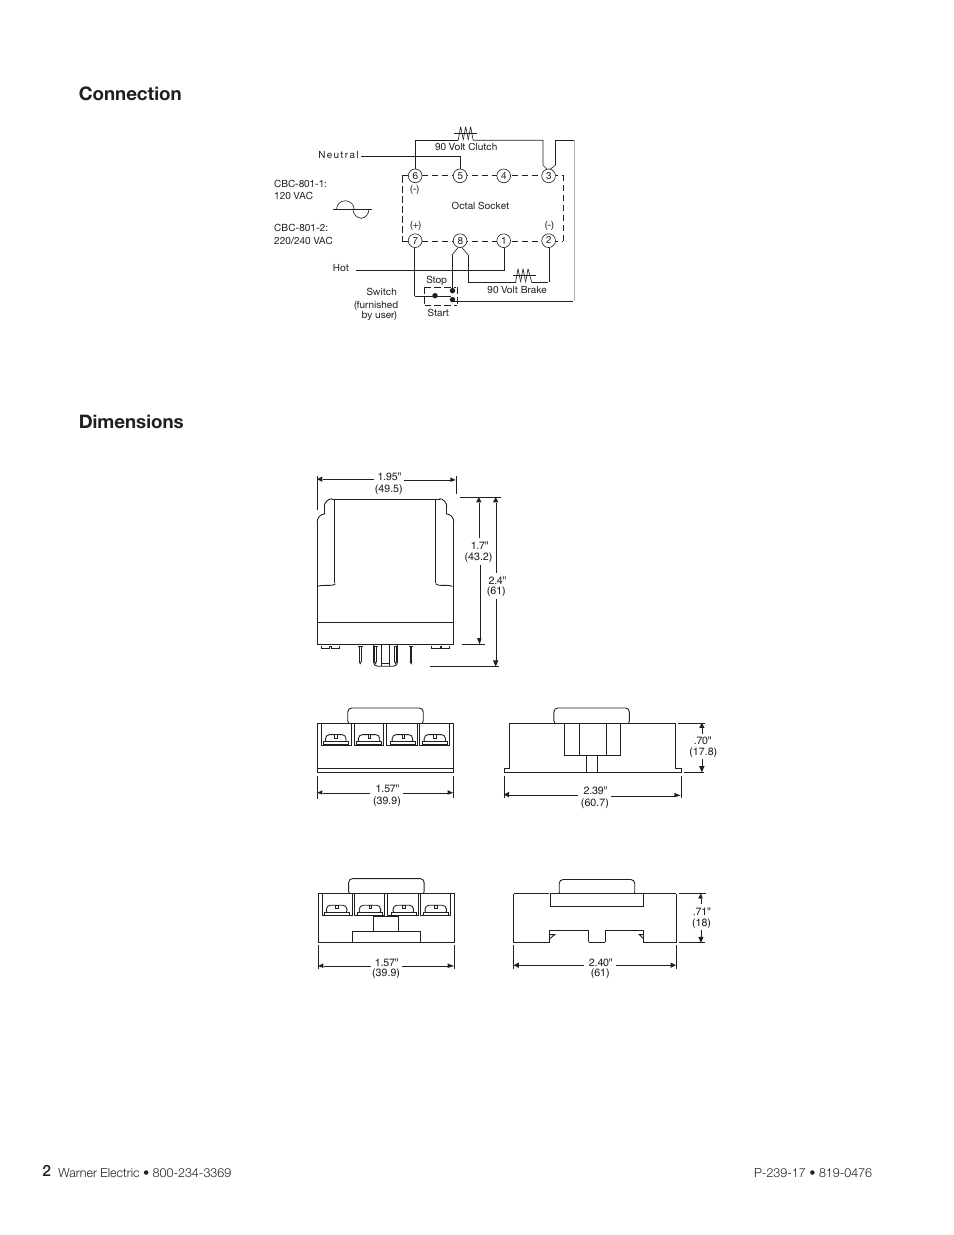 hight resolution of connection dimensions warner electric cbc 801 user manual page 2 4